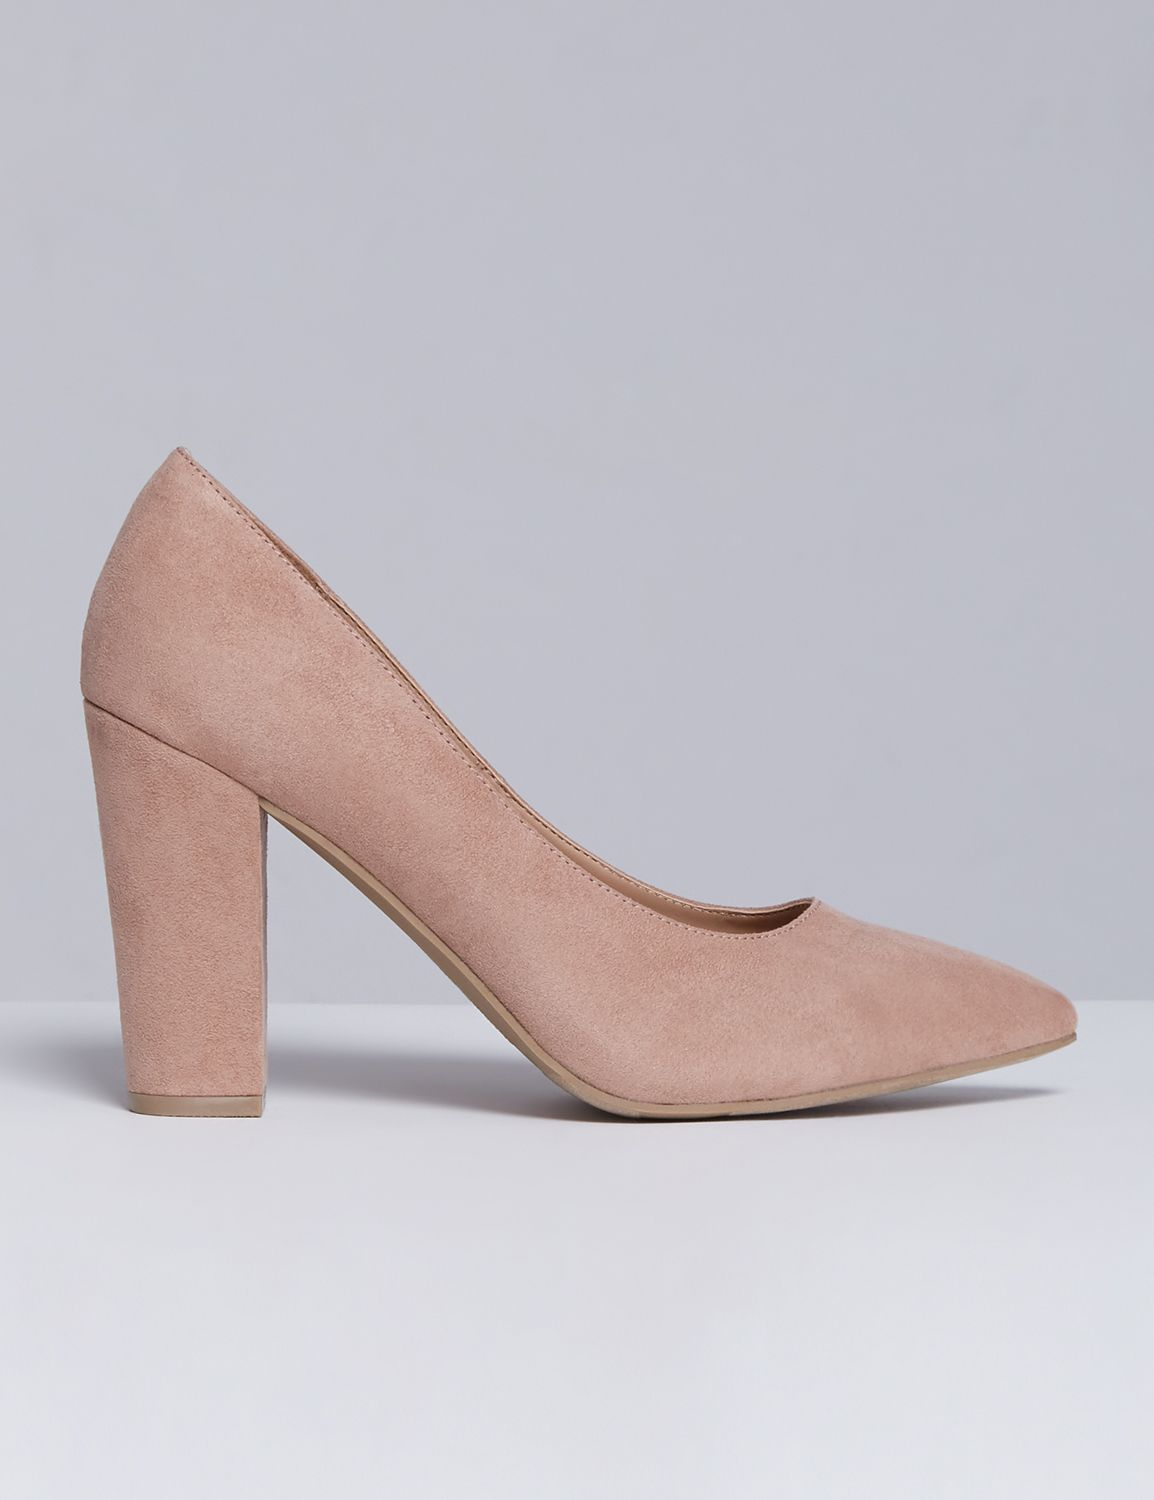 Lane Bryant Womens Block Heel Pump 7W Humus